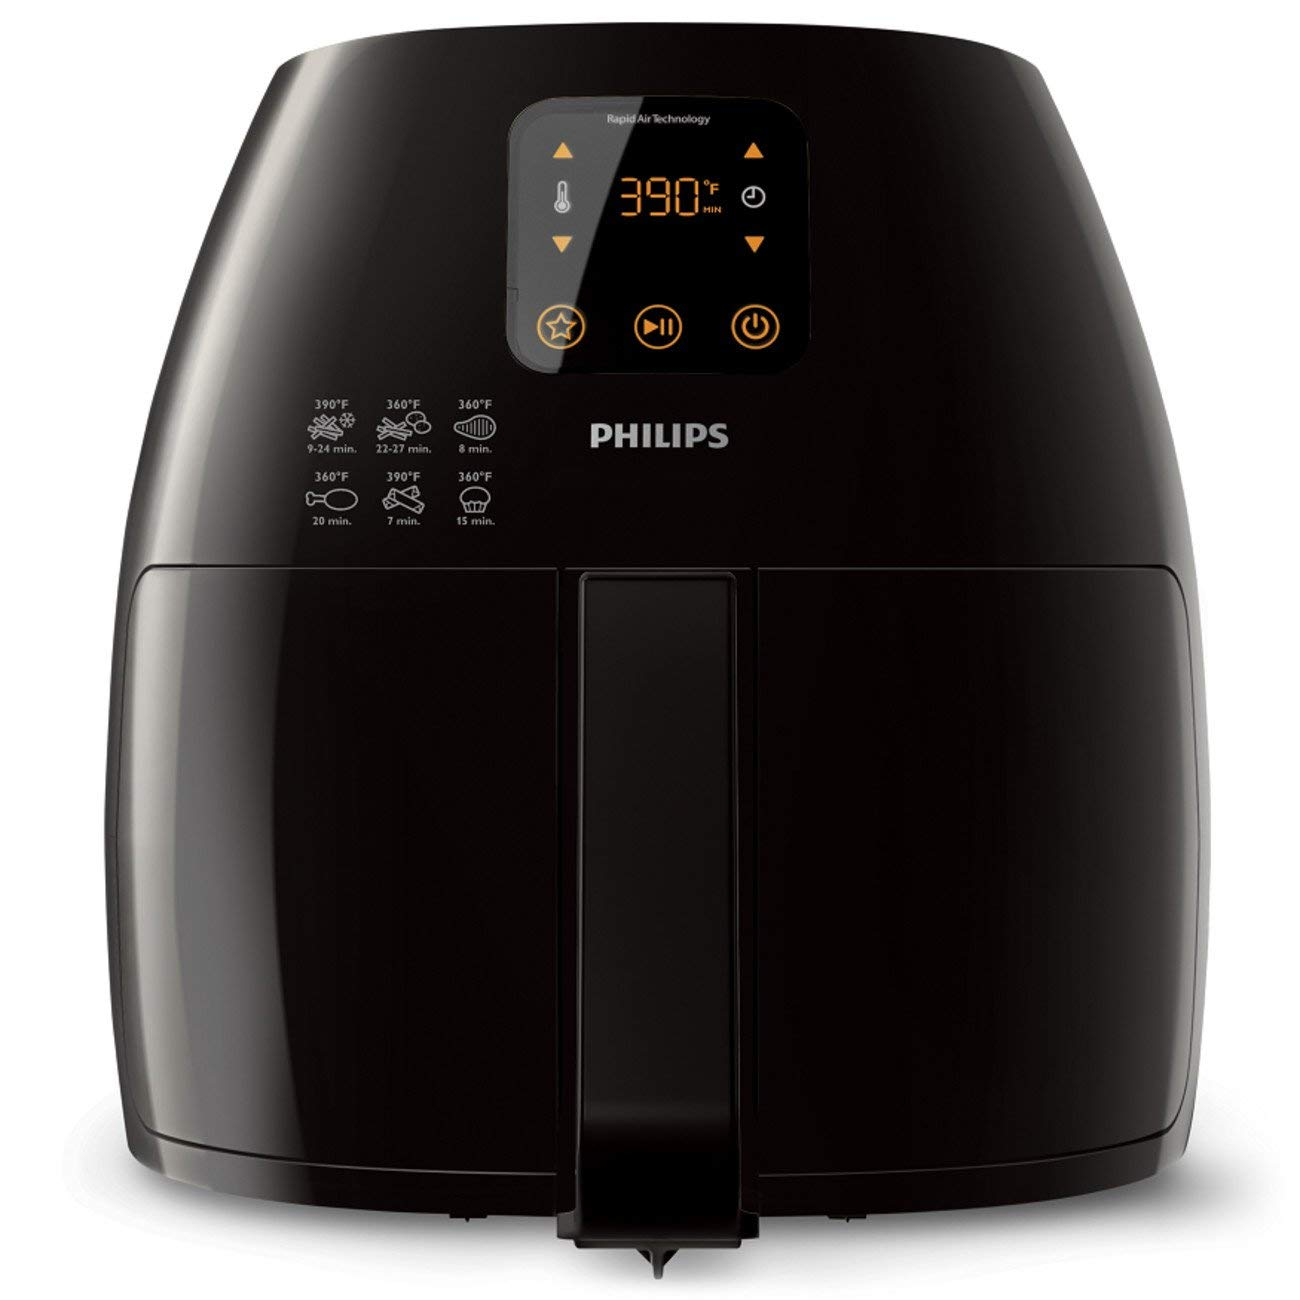 Top 5 Air Fryer Reviews: Make Your Meals Healthier 9